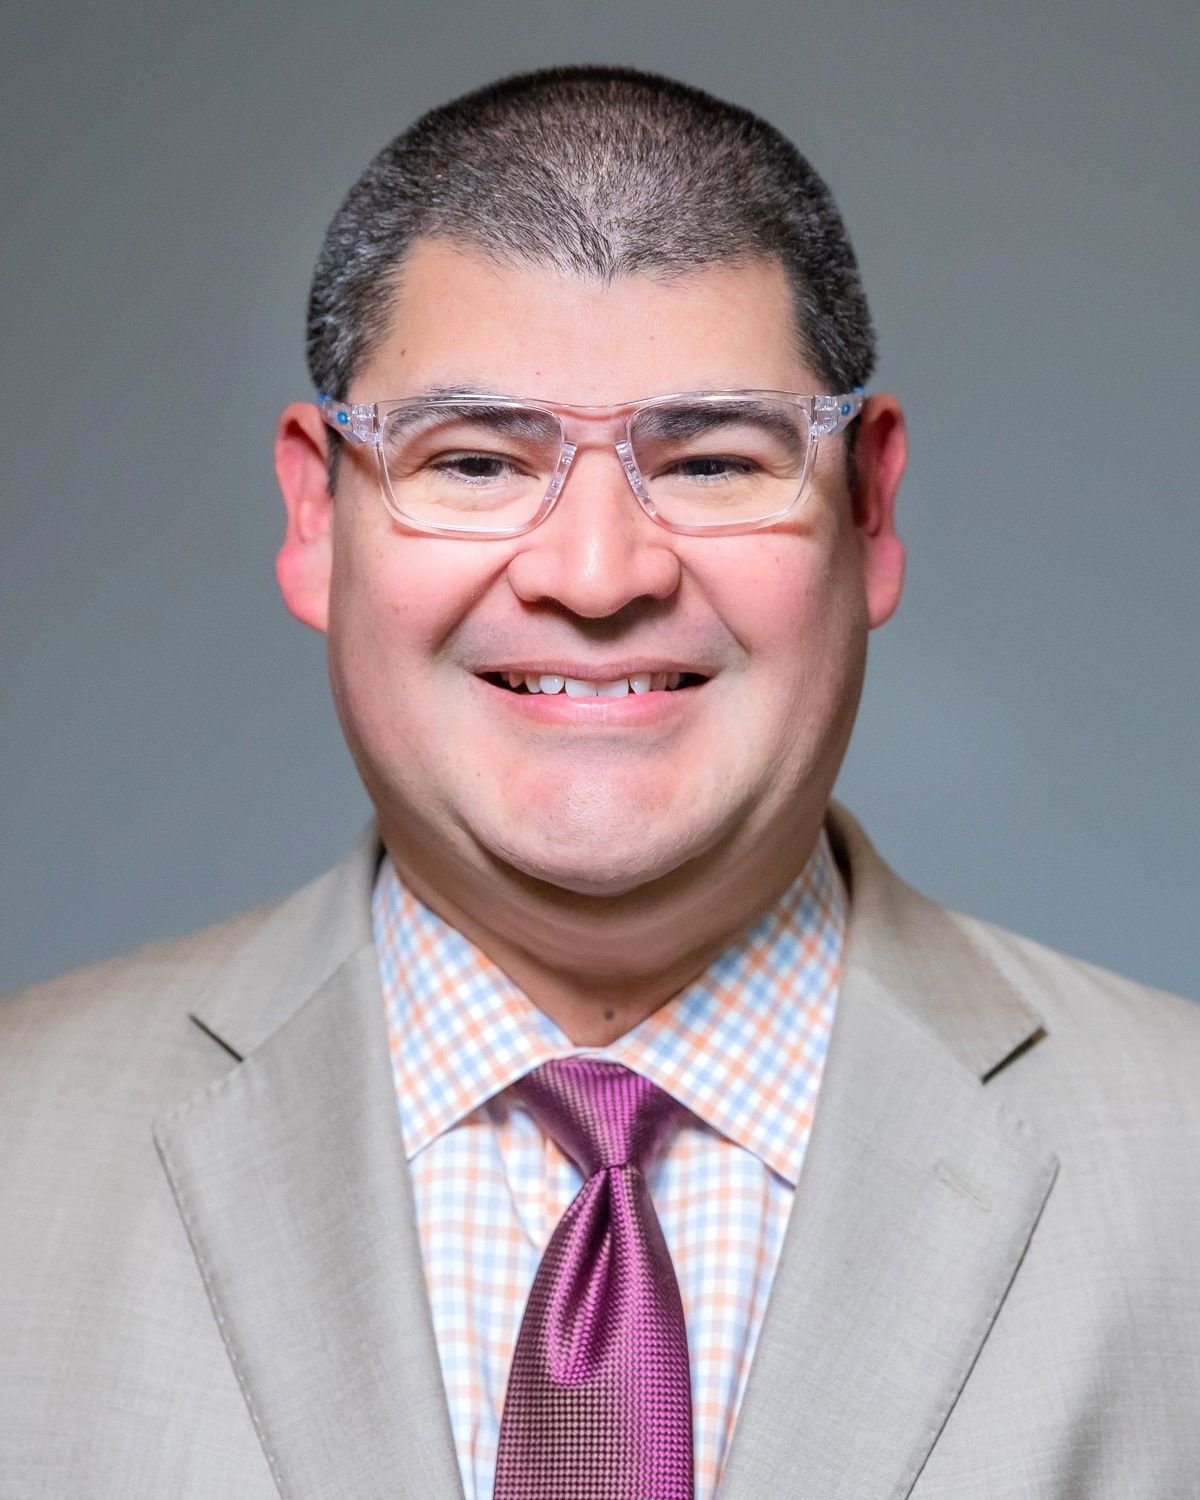 Jason Hernández, MBA — Chief Human Resources Officer